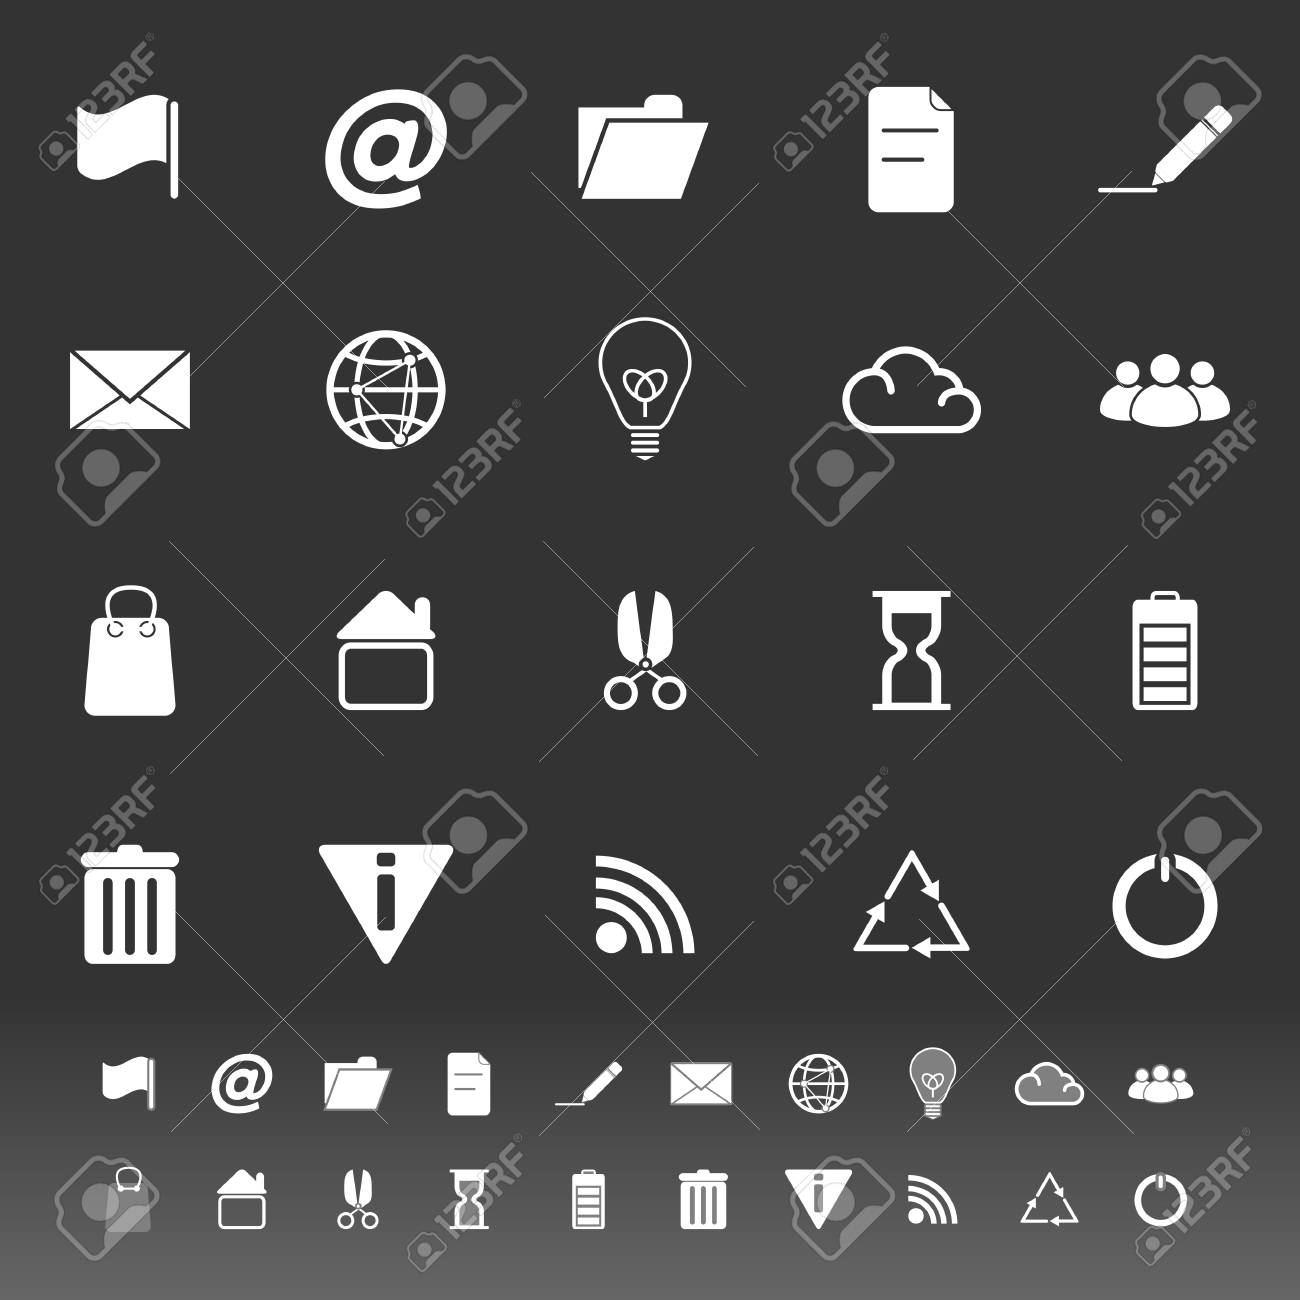 Web and internet icons on gray background, stock vector Standard-Bild - 25127009